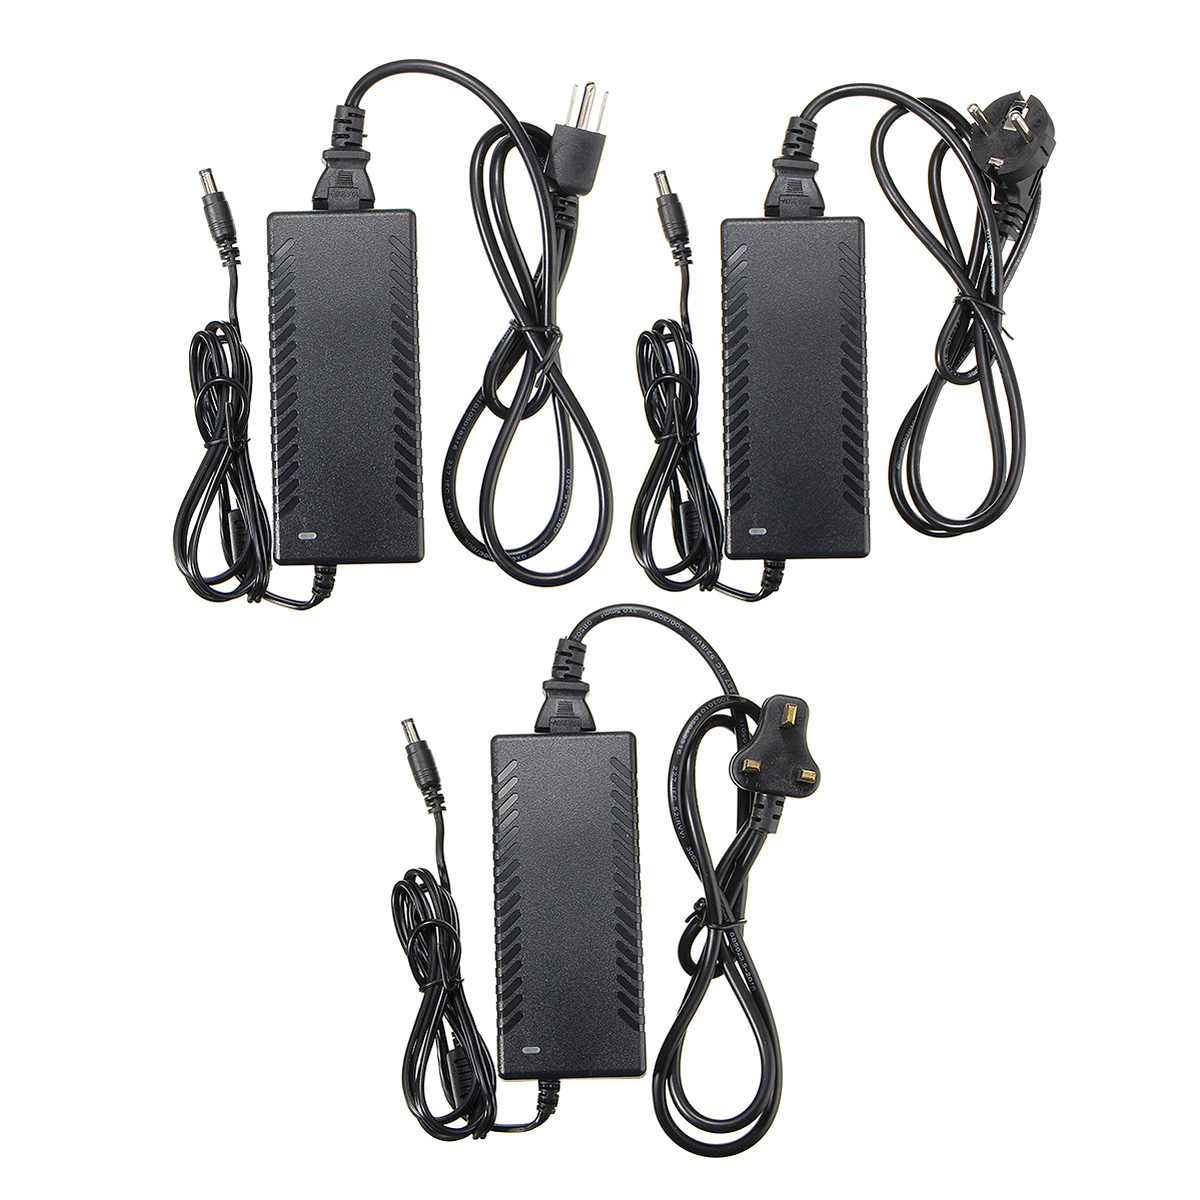 24V 4A 96W 5.5x2.5mm Power Supply Adapter